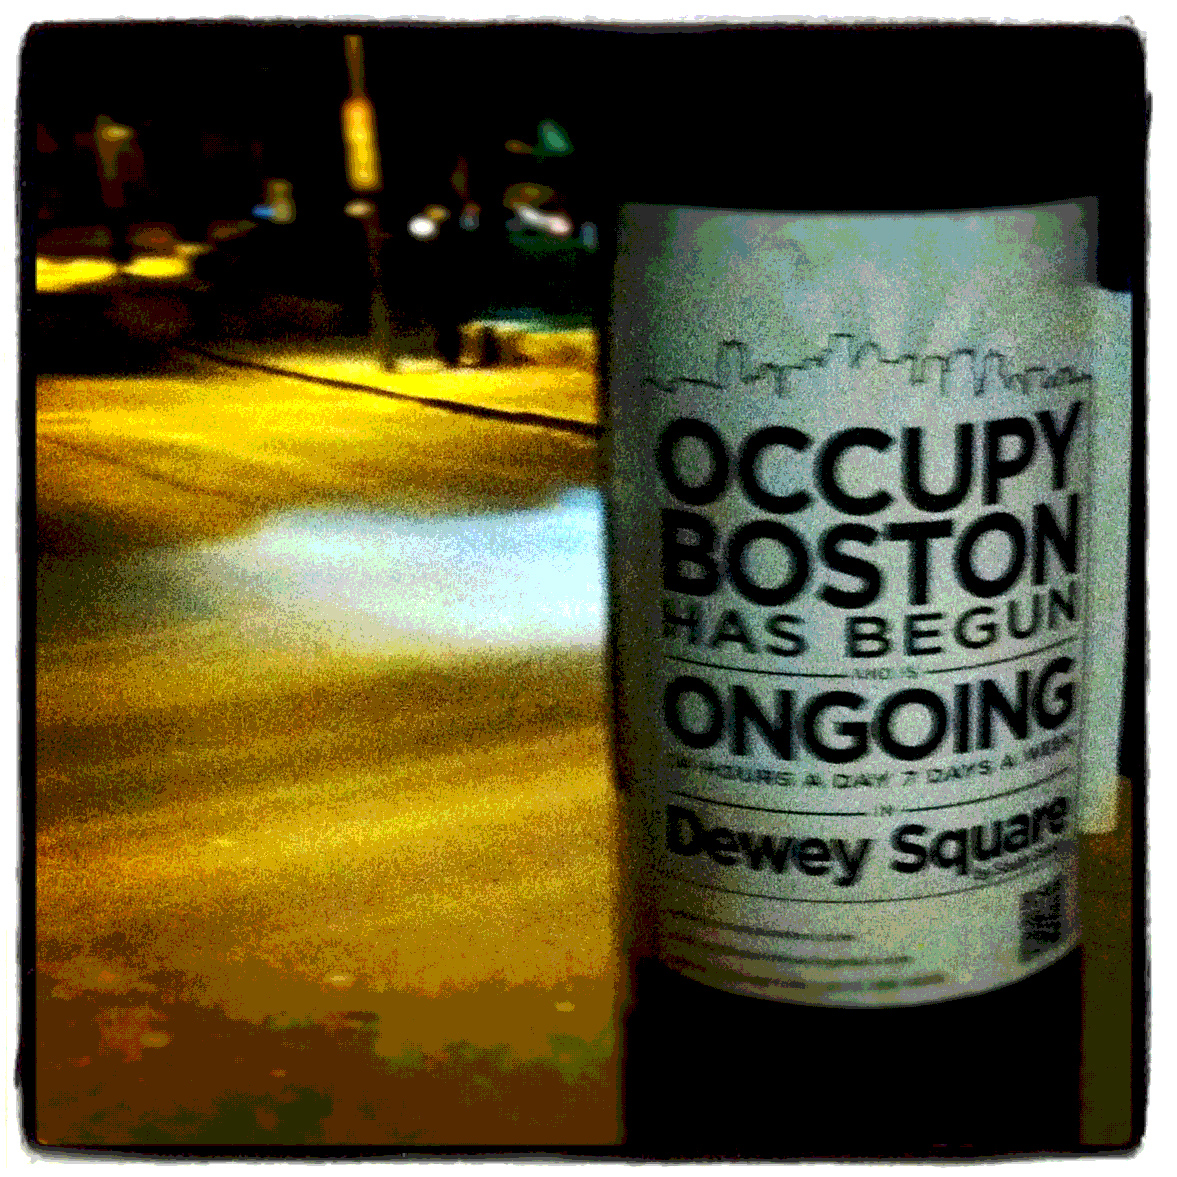 Artists Occupy Sunday (11/6) with Undivided: Dewey Square Pop-up Art ...